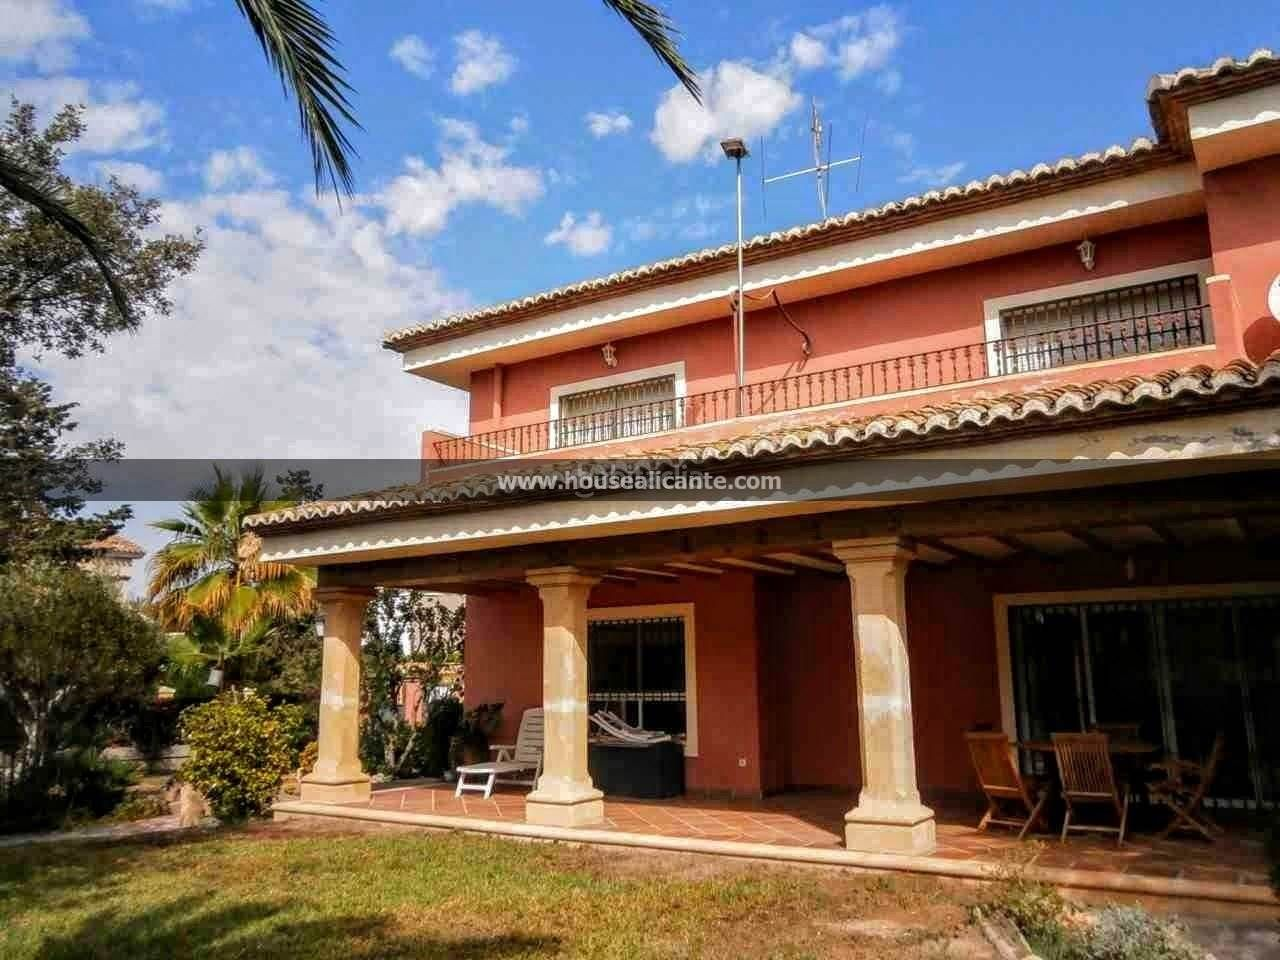 Chalet  Residential quiet area, close to san juan. 455 m2, 6 bed roomed house